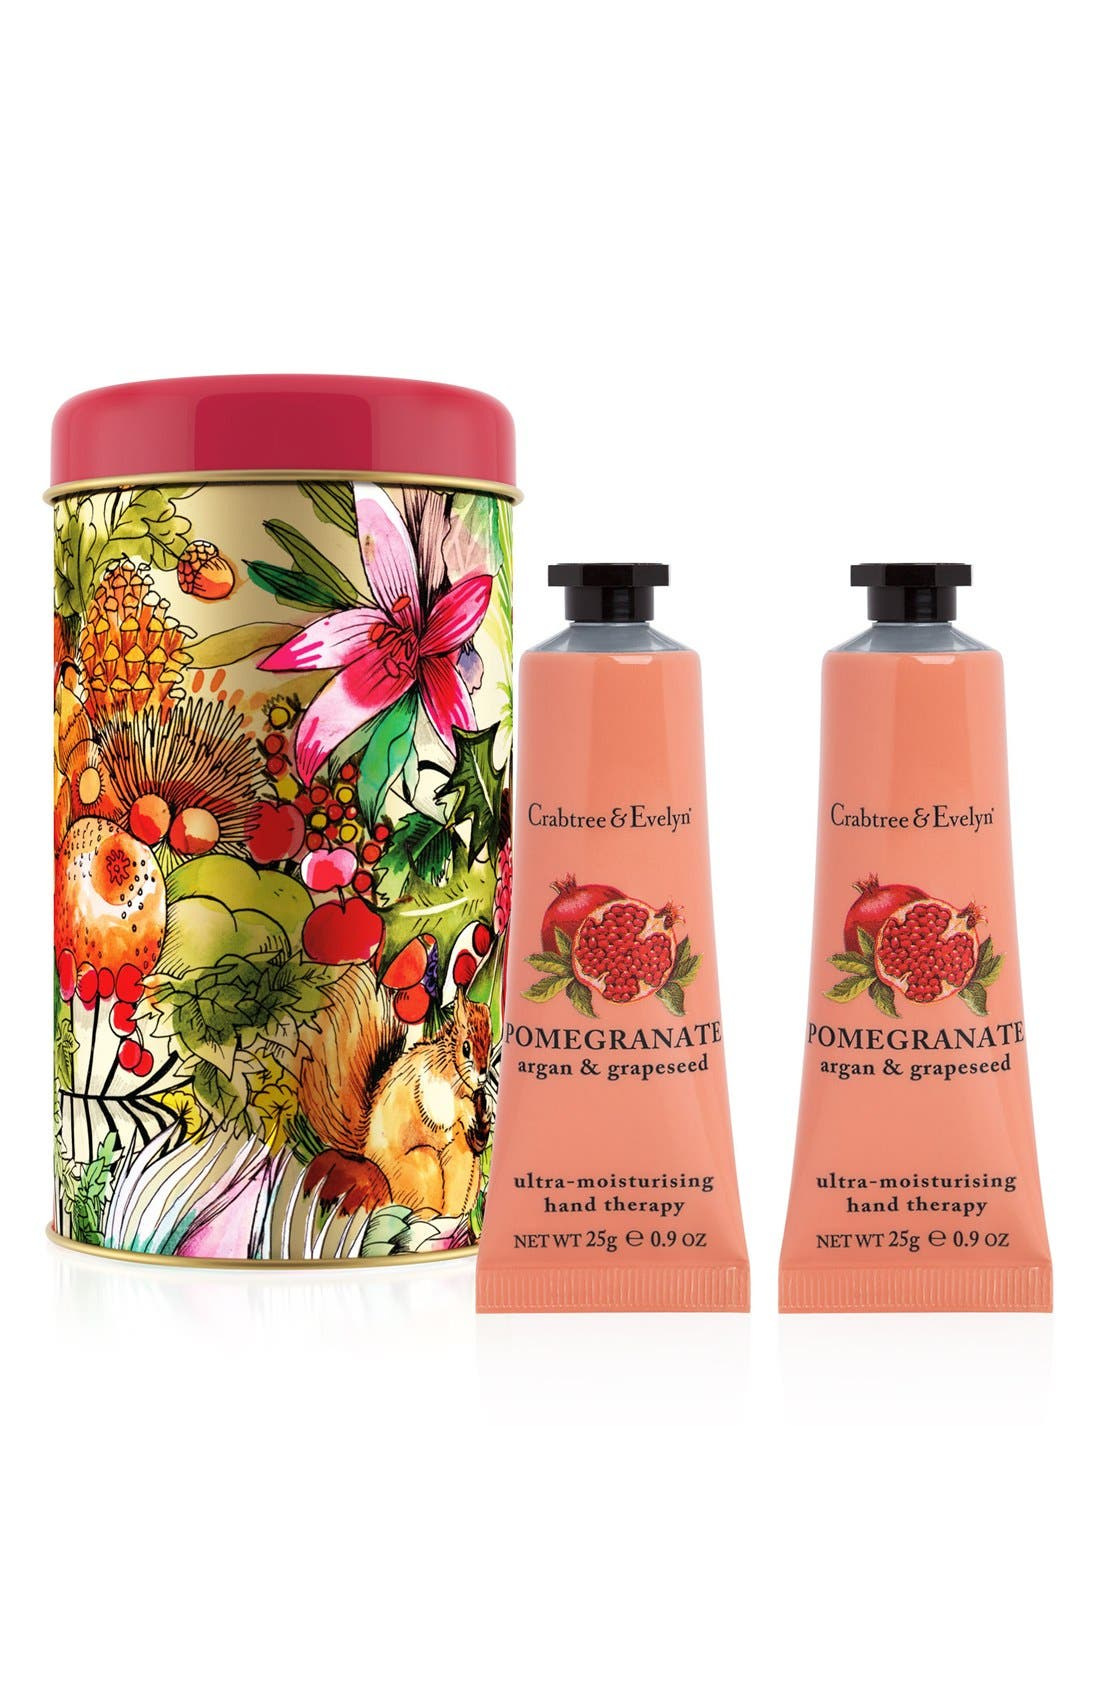 Crabtree & Evelyn Pomegranate, Argan & Grapeseed Ultra-Moisturizing Hand Therapy Duo